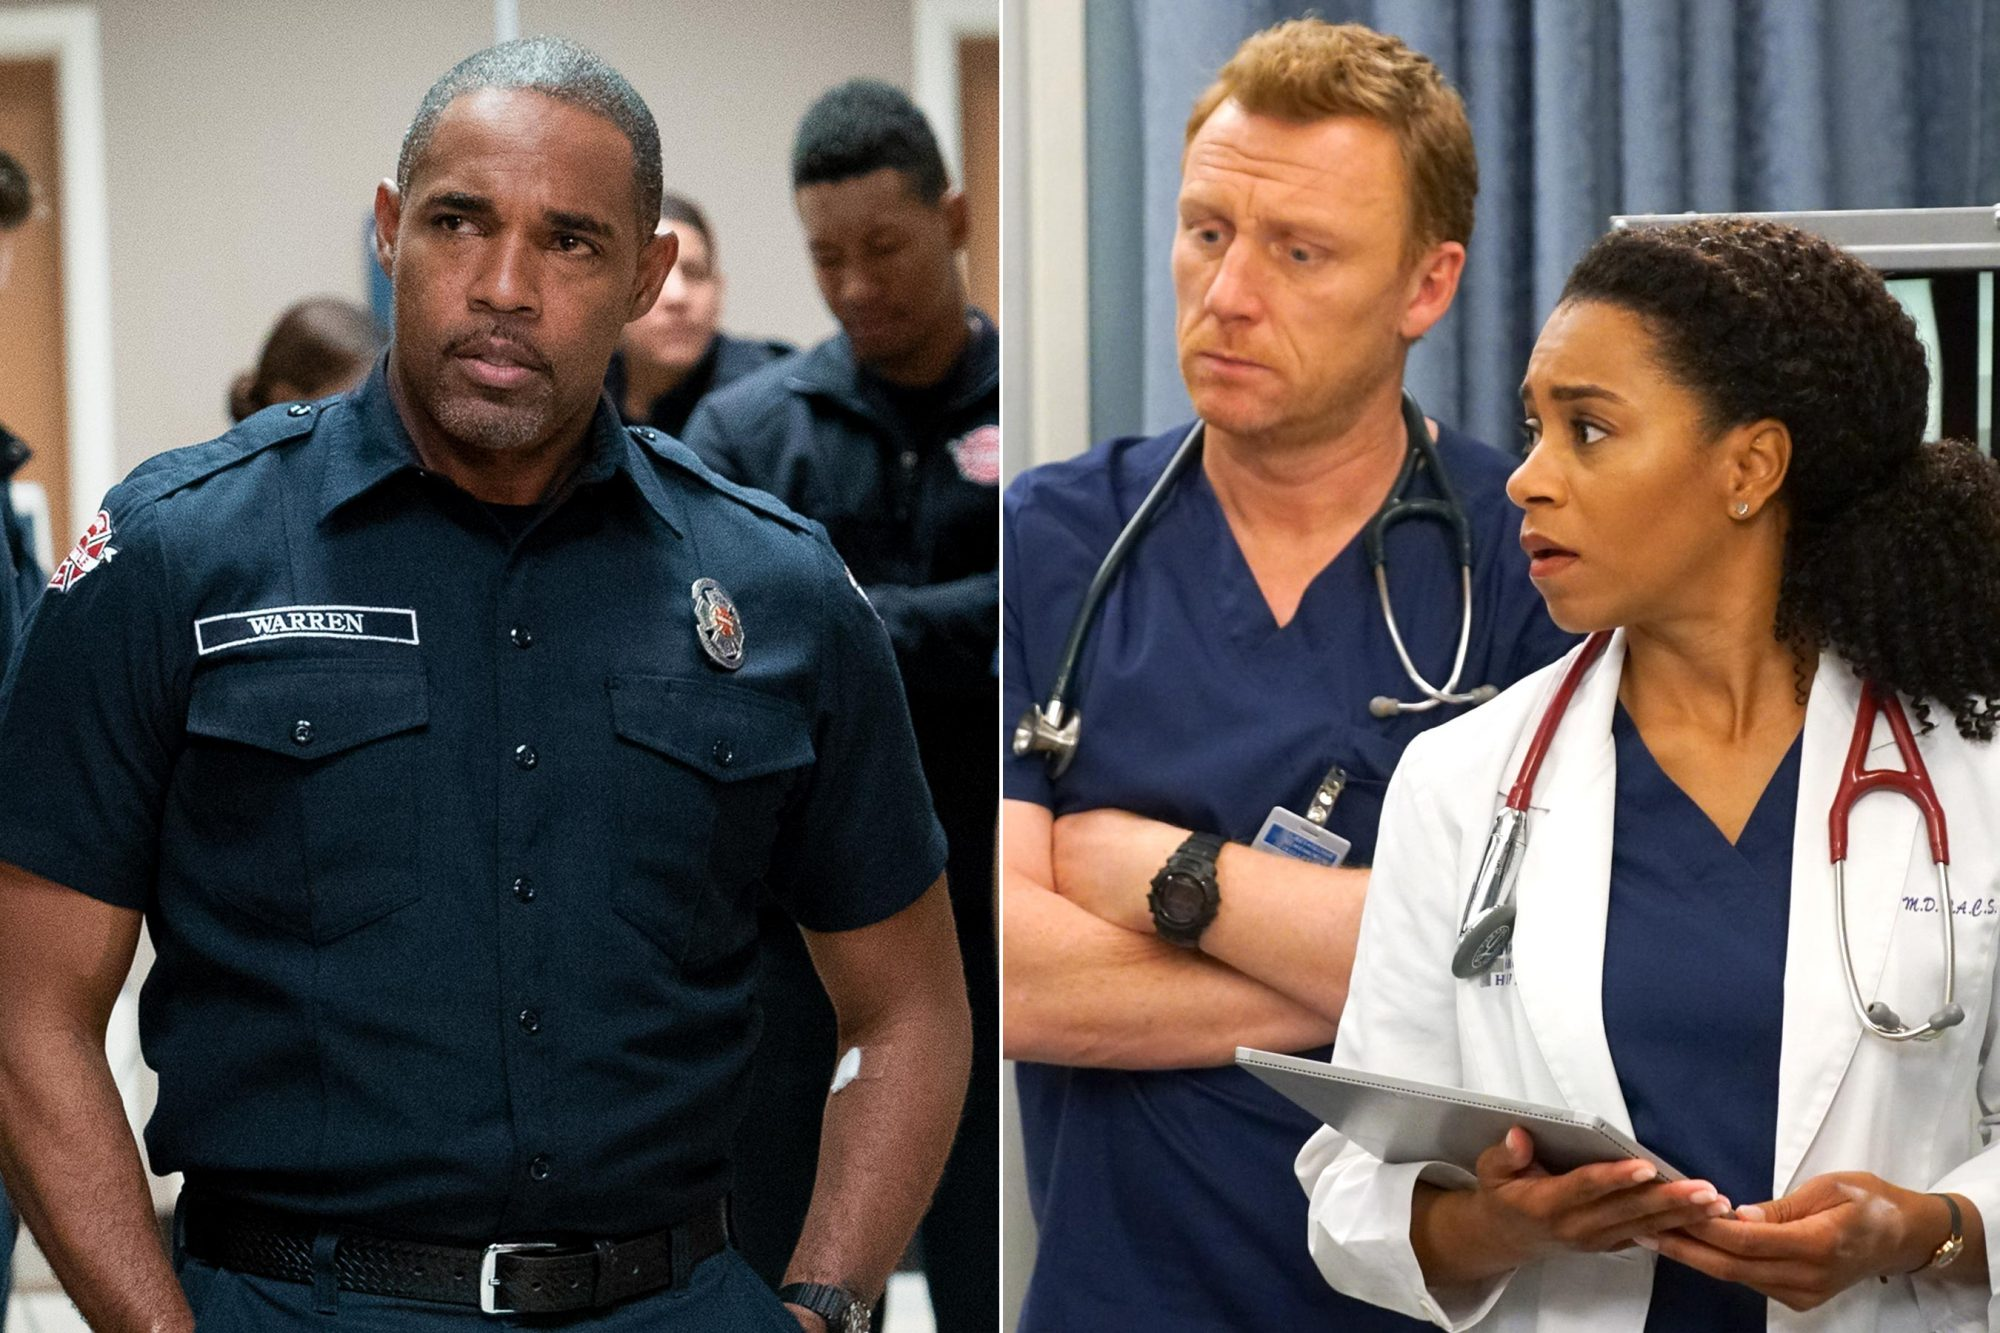 """STATION 19 - Worlds will collide in Seattle once again, as ABC is set to air a TGIT crossover event on Thursday, May 2, featuring all-new episodes of """"Grey's Anatomy"""" and """"Station 19"""" from 8:00-10:00 p.m. EDT. The second hour of the TGIT crossover event is an all-new episode of """"Station 19,"""" entitled """"Always Ready."""" Following a deadly blaze inside a coffee beanery, the members of Station 19 find themselves on high alert as a beloved member of their team lands at Grey Sloan, leaving the future uncertain in the face of a life-threatening situation, on """"Station 19,"""" THURSDAY, MAY 2 (9:01-10:00 p.m. EDT), on The ABC Television Network. (ABC/Eric McCandless) JASON GEORGE GREY'S ANATOMY - Worlds will collide in Seattle once again, as ABC is set to air a TGIT crossover event on Thursday, May 2, featuring all-new episodes of """"Grey's Anatomy"""" and """"Station 19"""" from 8:00-10:00 p.m. EDT. The TGIT crossover event kicks off with an all-new episode of """"Grey's Anatomy,"""" entitled """"What I Did for Love,"""" where Maggie treats one of Station 19's own, and Jo learns a hard lesson. Meanwhile, when working with a family seeking asylum, Meredith makes a call that could jeopardize her career on """"Grey's Anatomy,"""" THURSDAY, MAY 2 (8:00-9:01 p.m. EDT), on The ABC Television Network. (ABC/Scott Everett White) KEVIN MCKIDD, KELLY MCCREARY"""